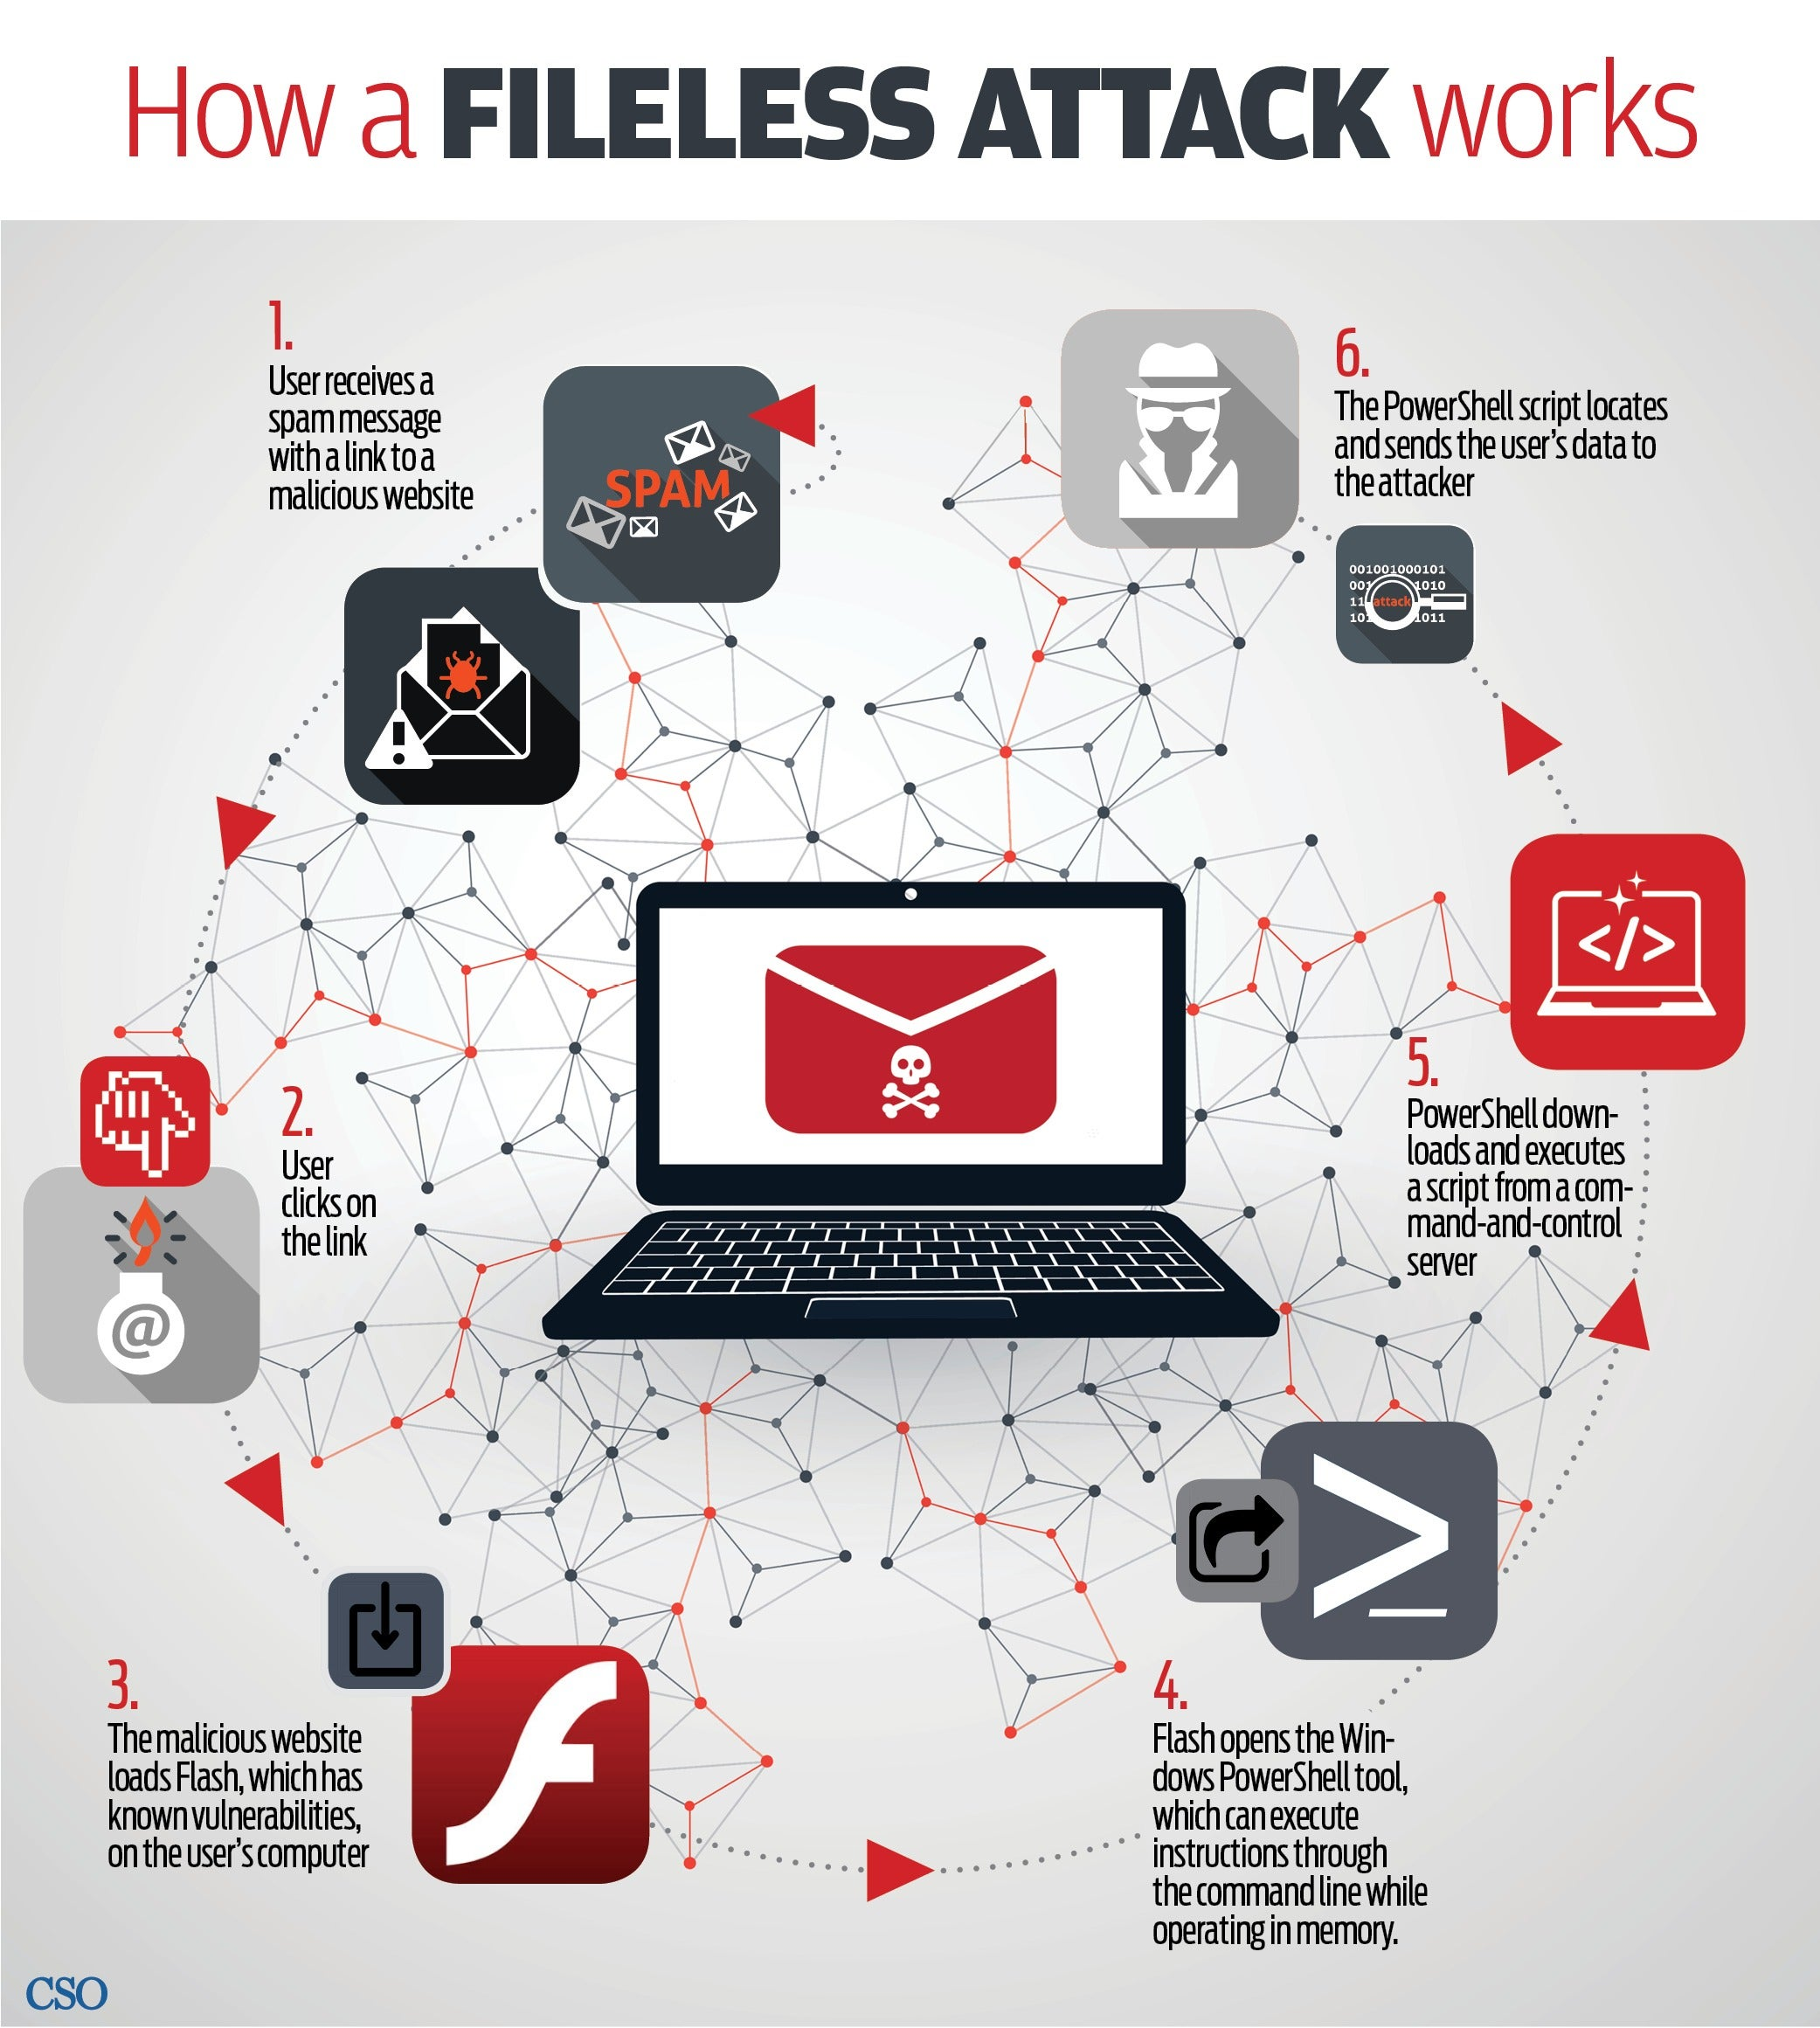 What is a fileless attack? How hackers invade systems without installing software